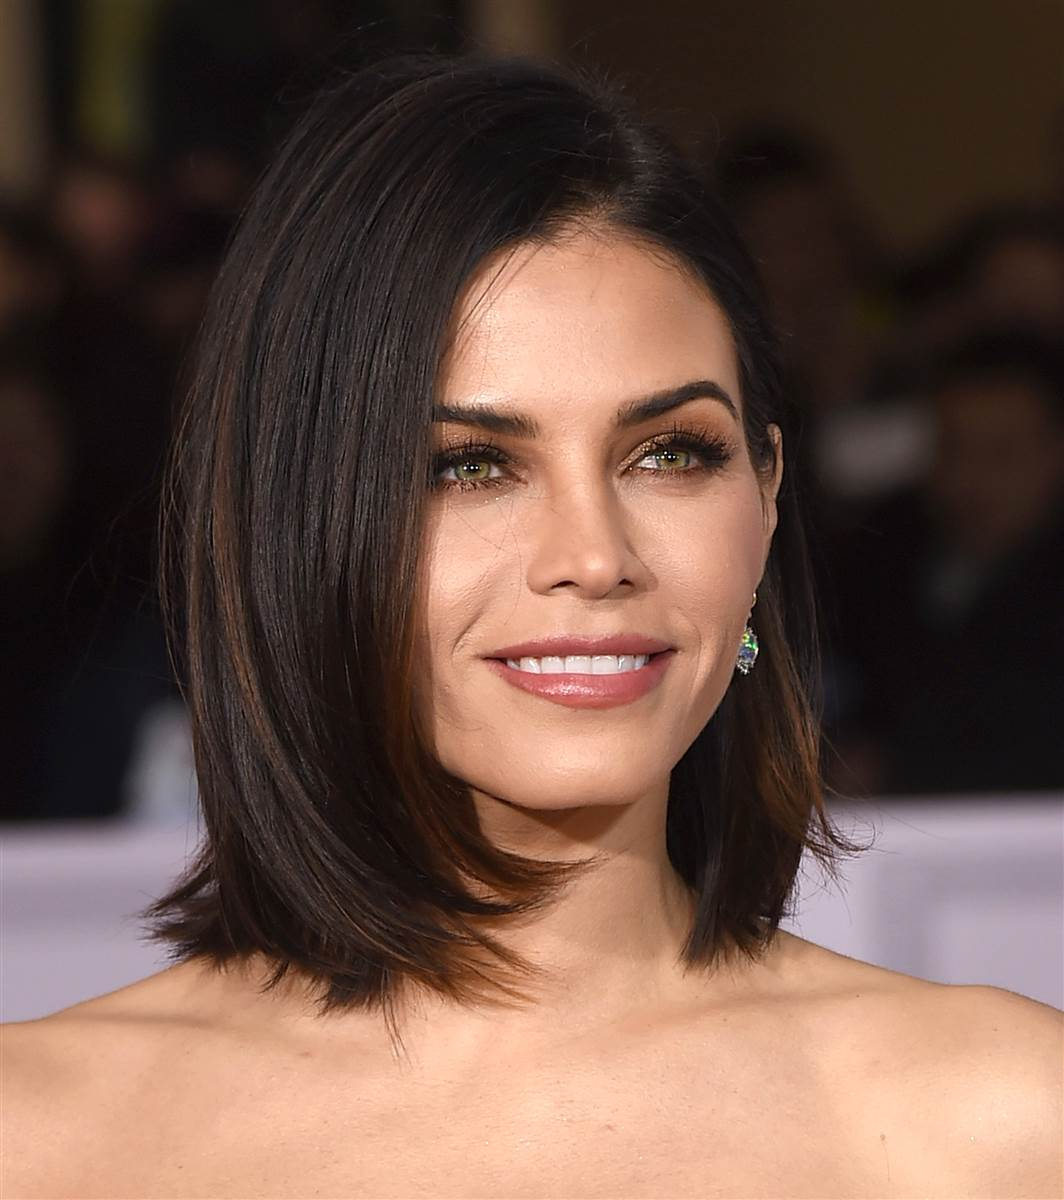 Short Hairstyles For Women 35 Advice For Choosing Hairstyles For